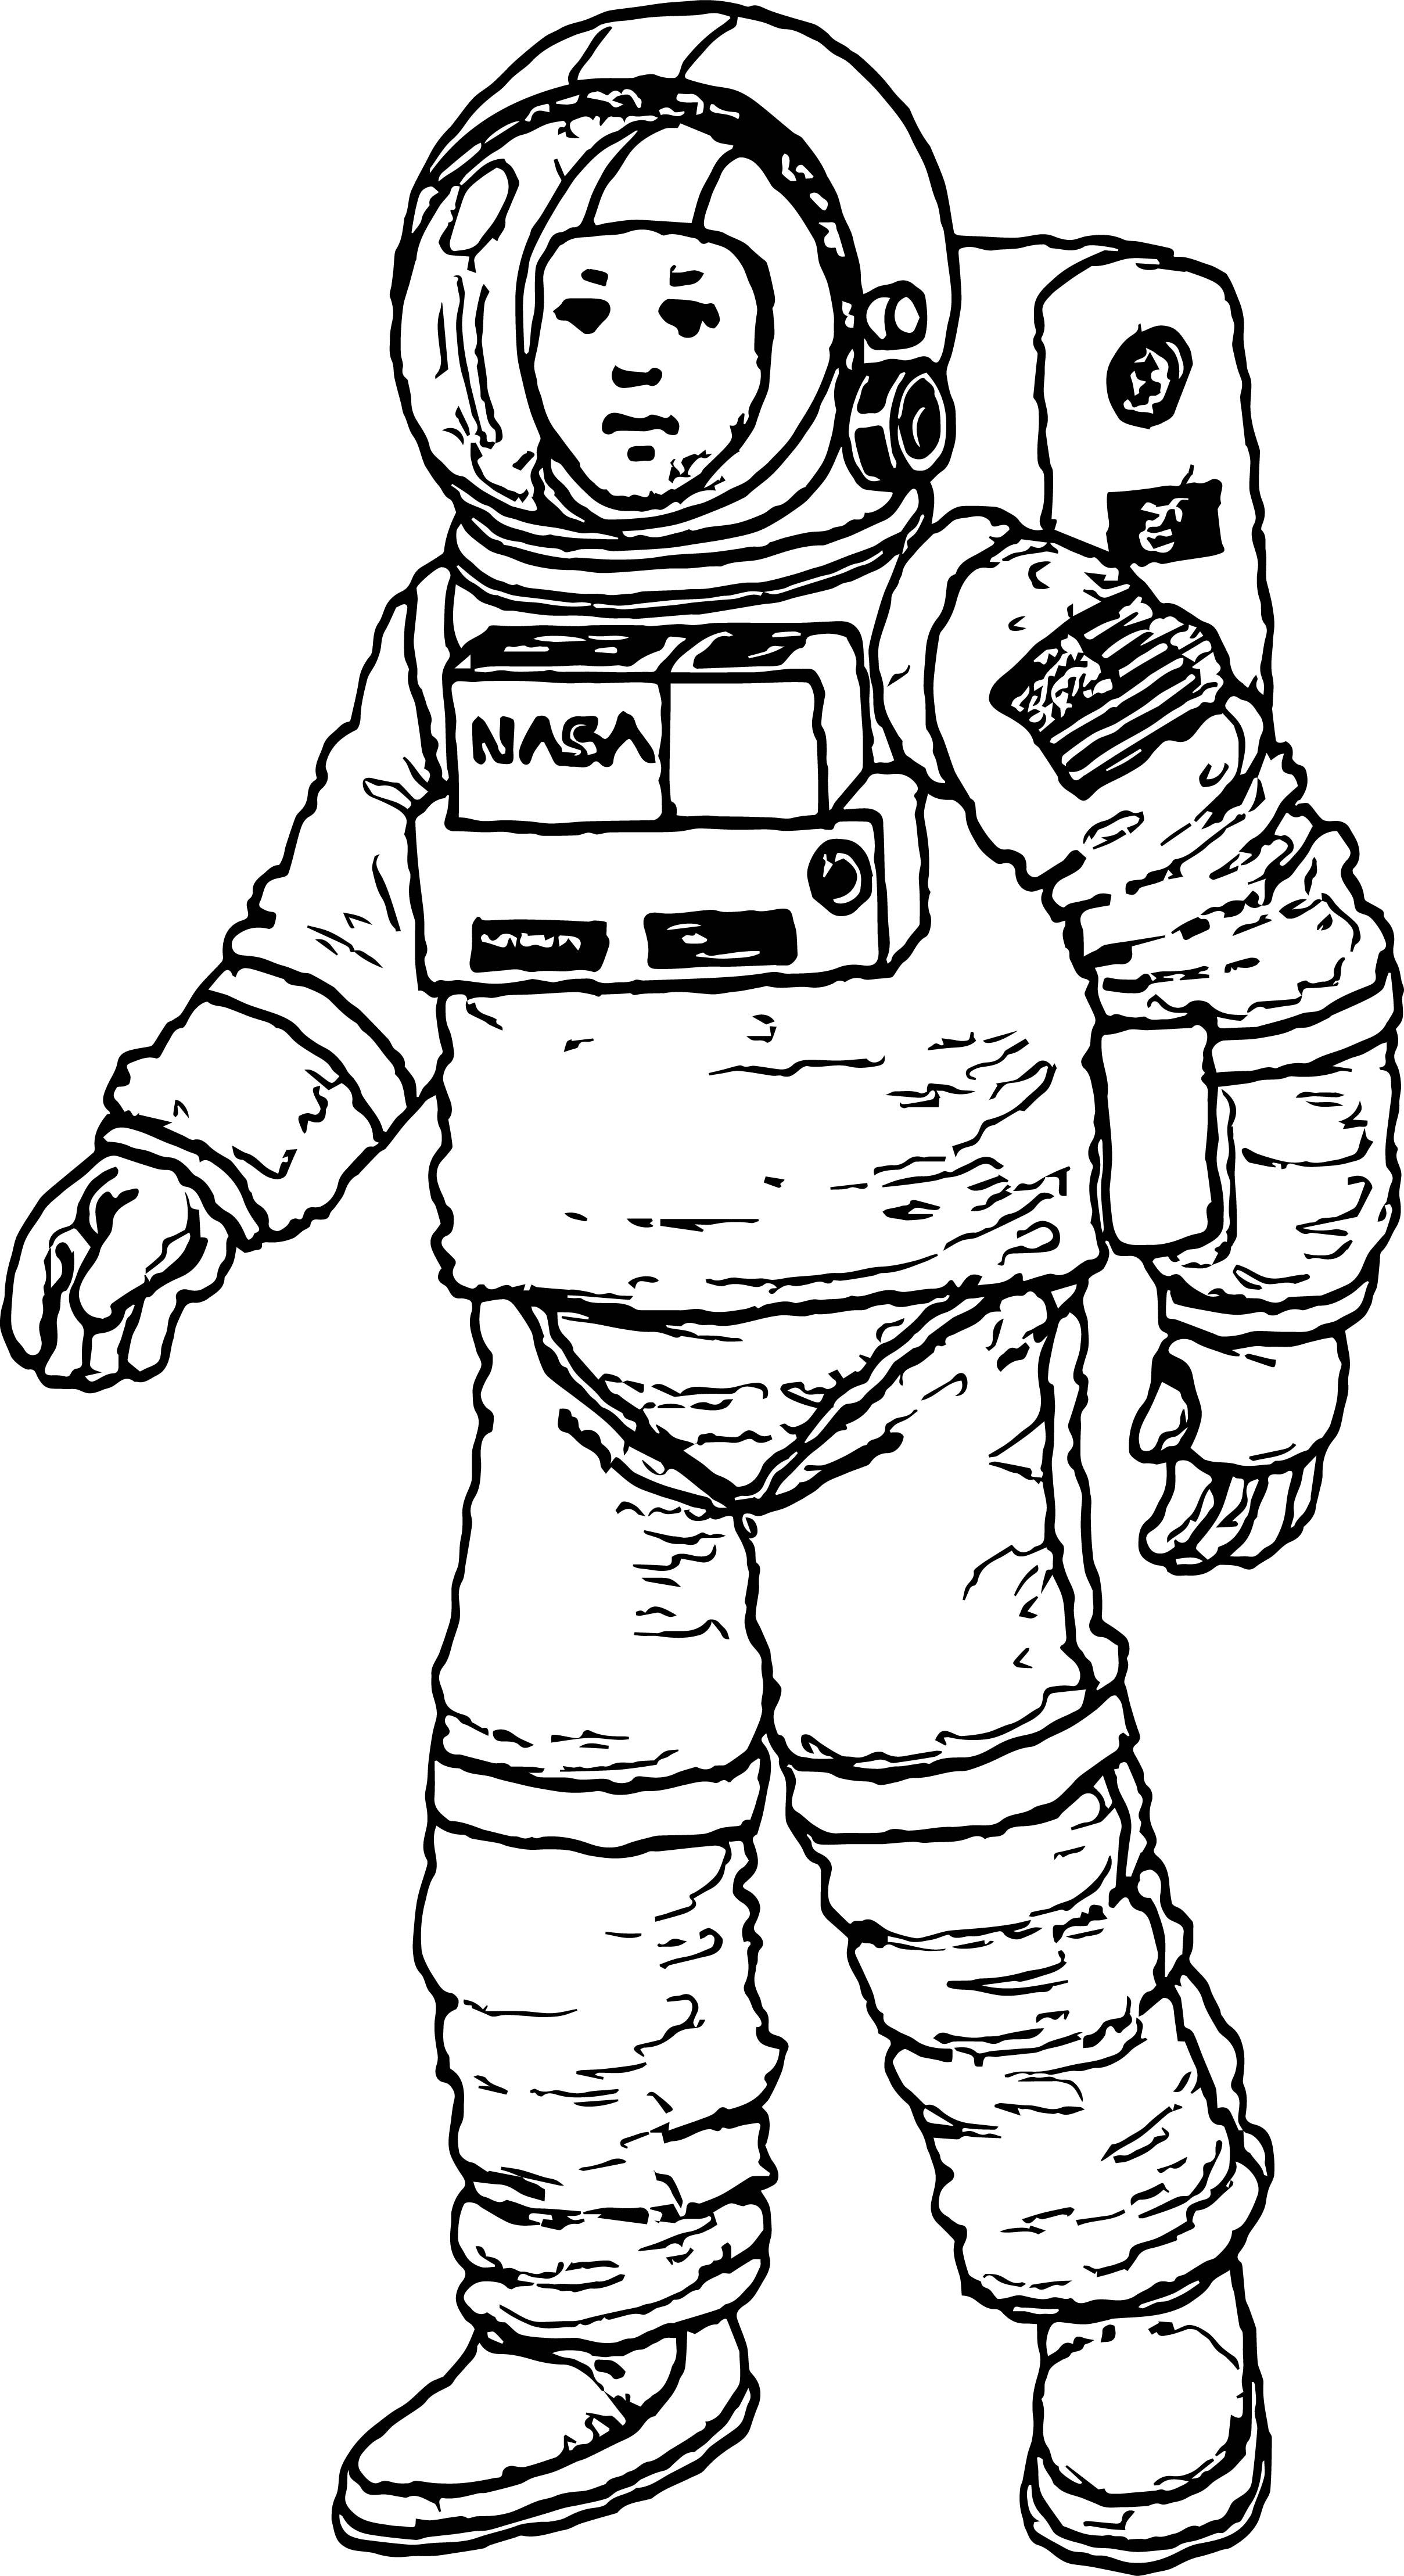 coloring picture of astronaut astronaut coloring pages at getcoloringscom free picture astronaut of coloring